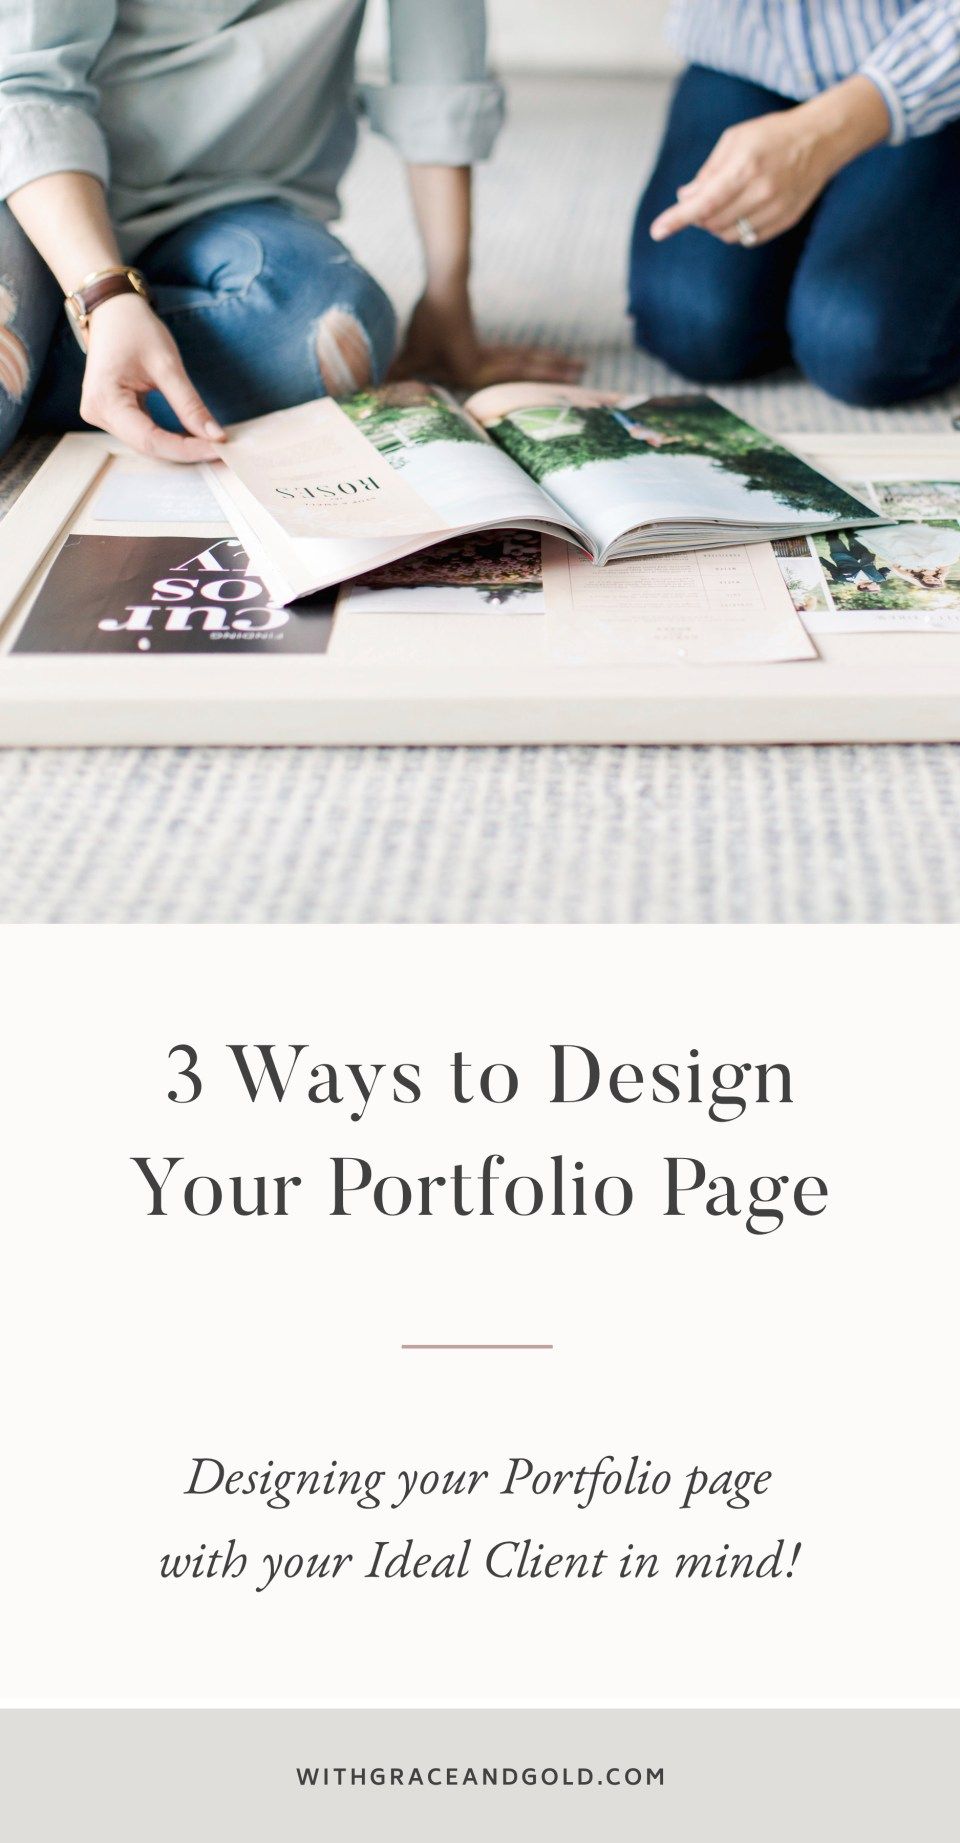 With Grace and Gold - Portfolio Page - Showit Designer, Designers, Design, Designs, Template, Templates, Theme, Themes - Branding and Web Design Website Design for Creative Women in Business - Photo